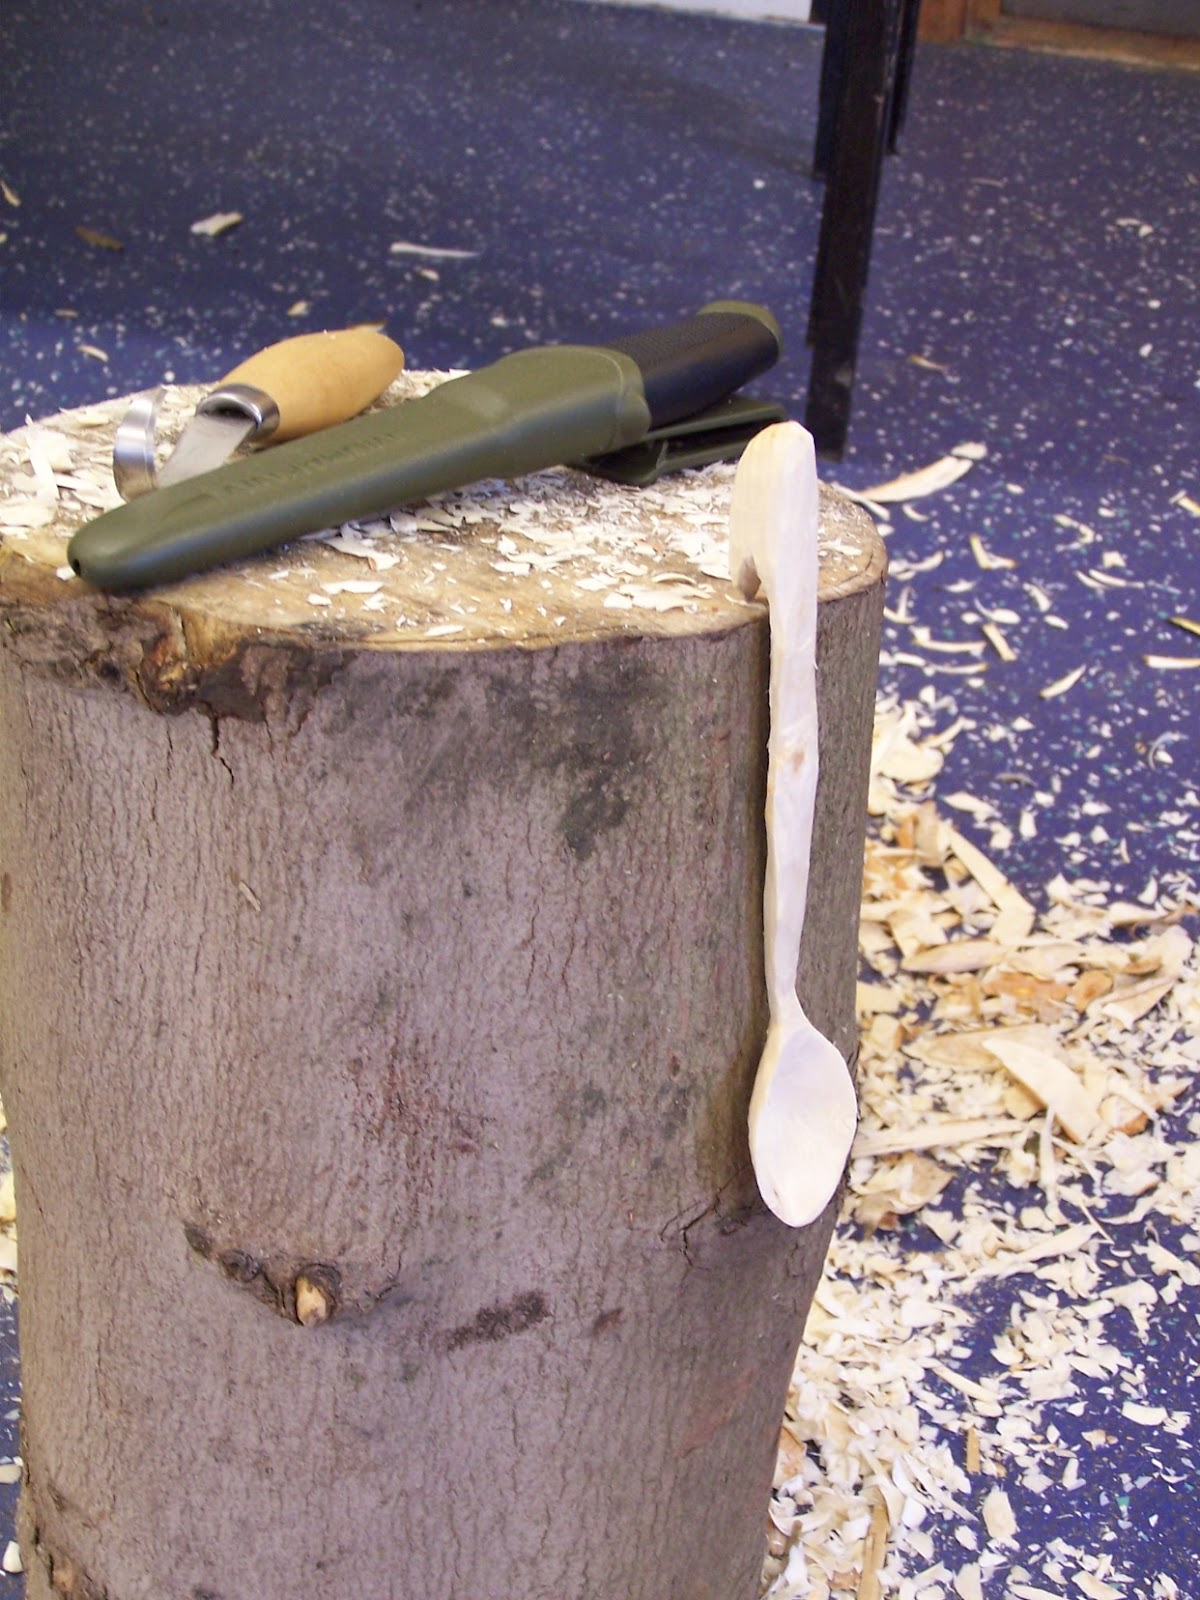 Woodsman crafts spoon carving course march